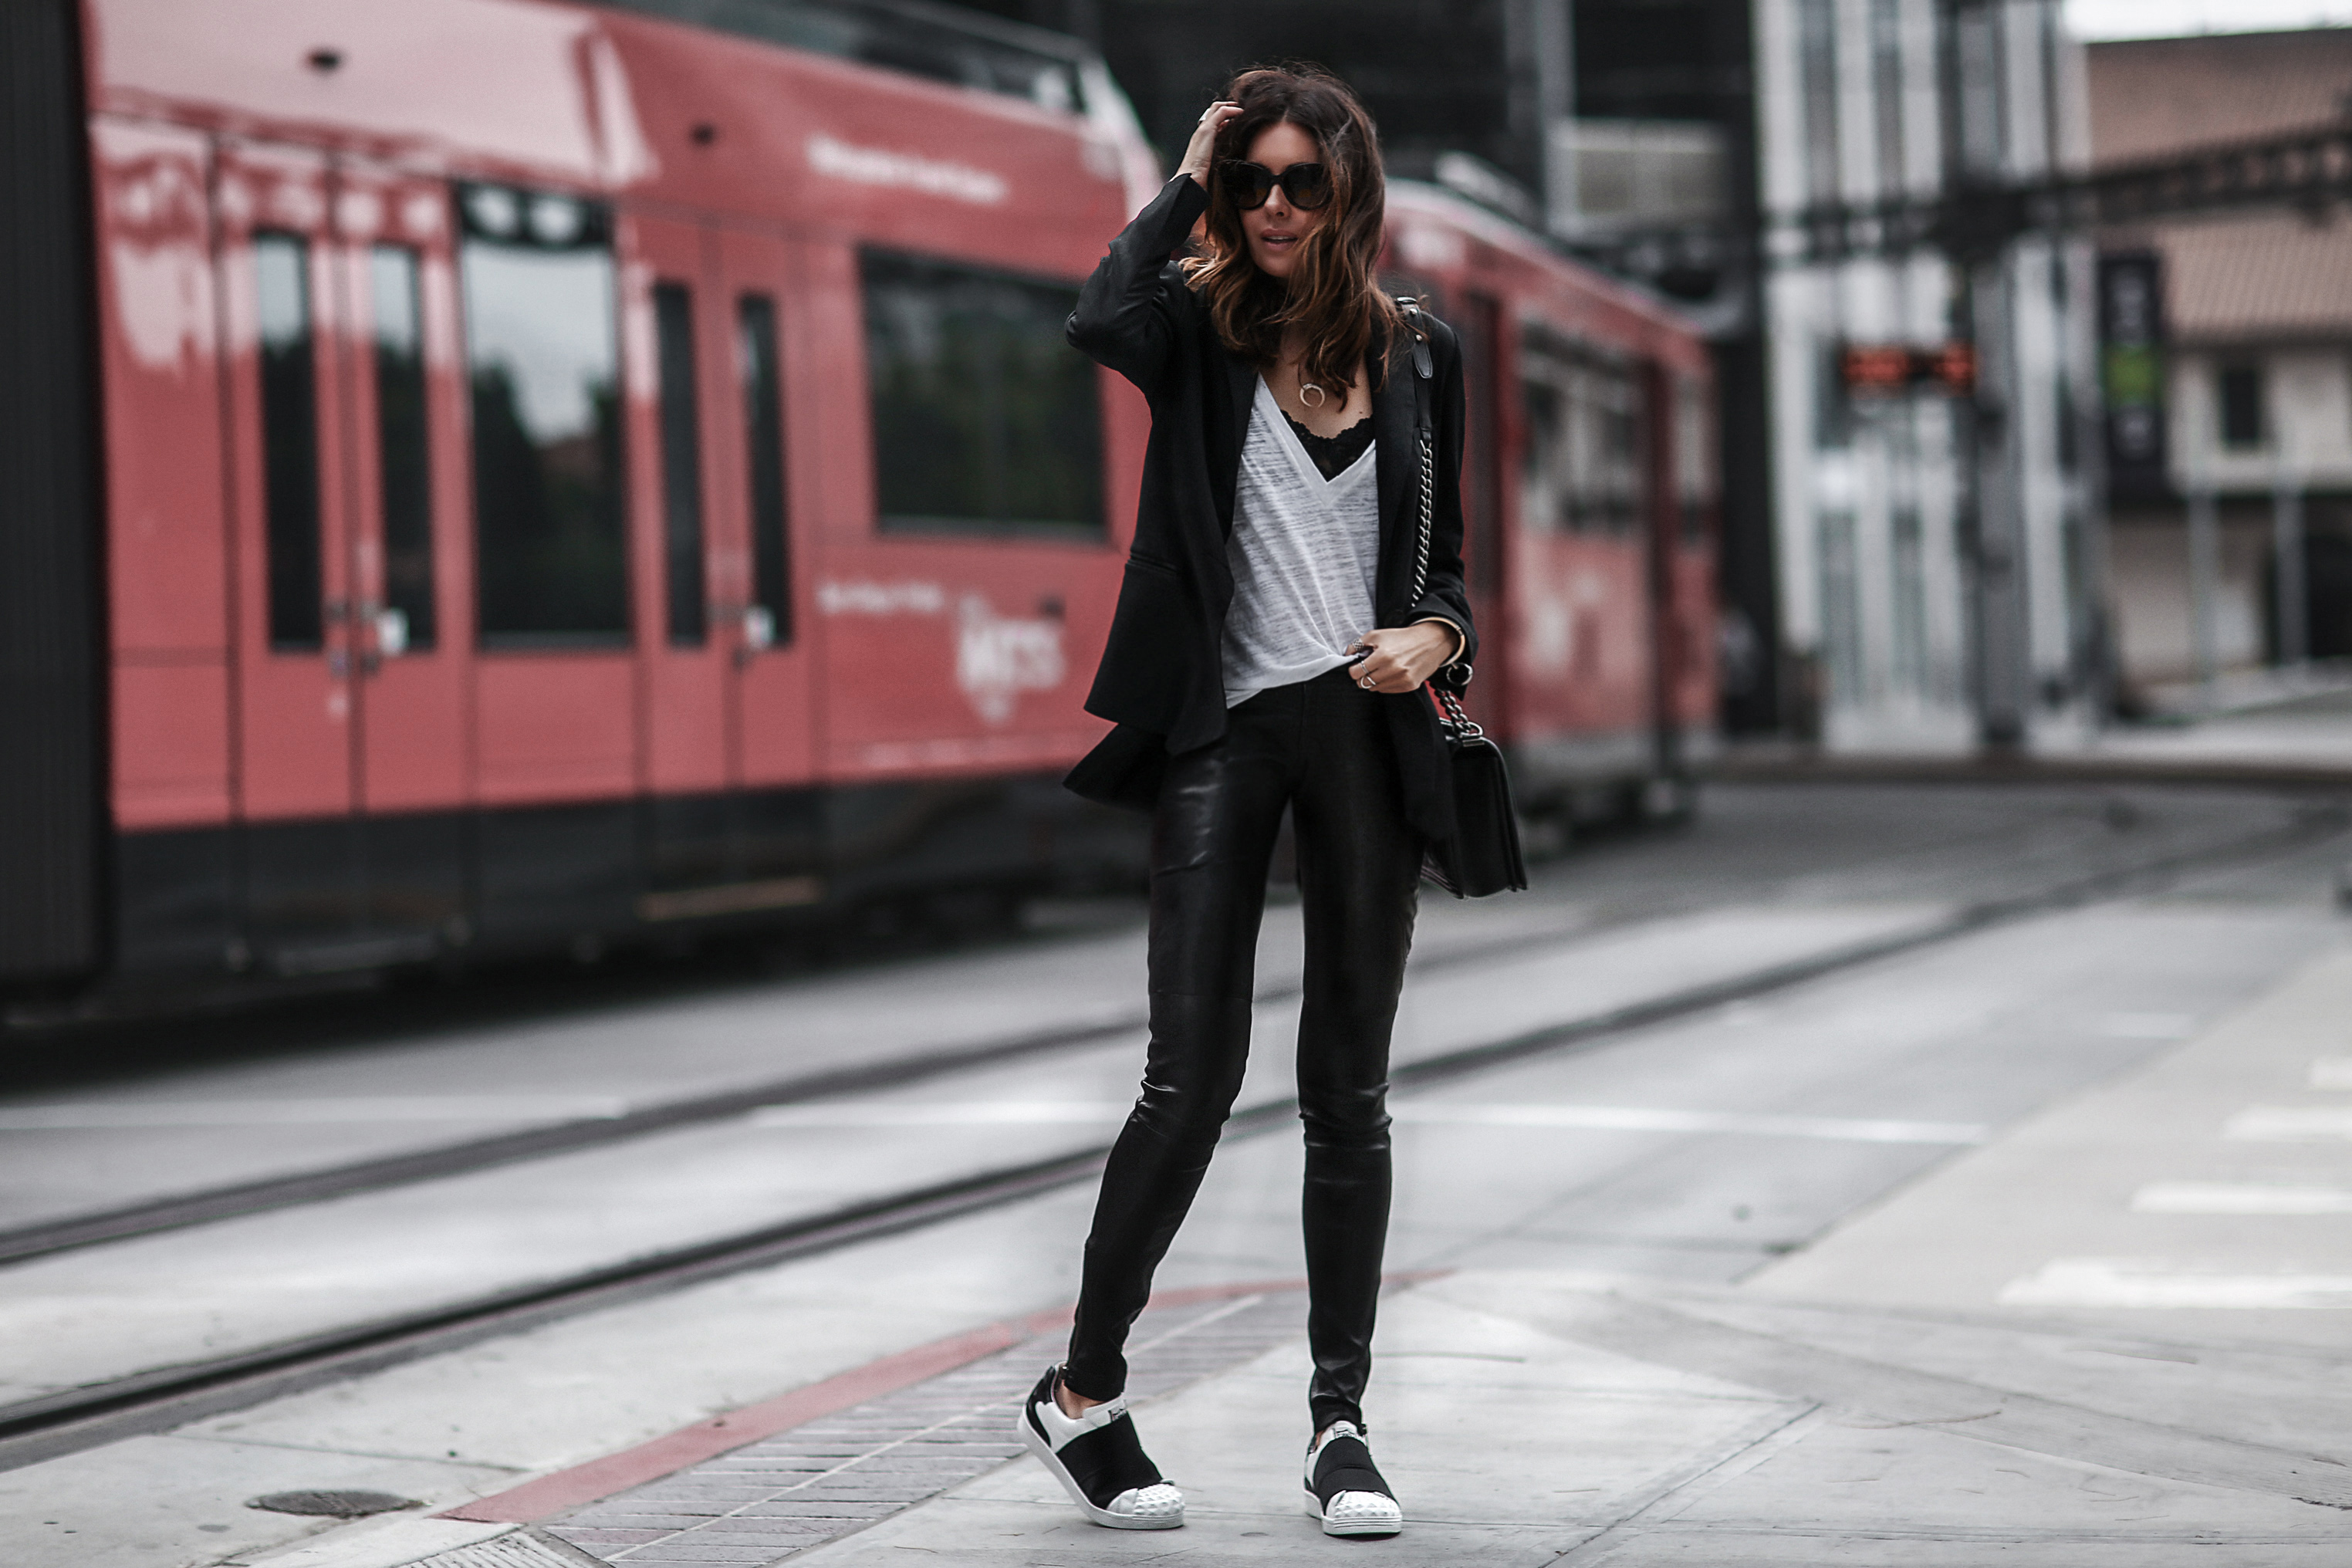 sneakers with elastic strap and studs, black leather pants, black blazer